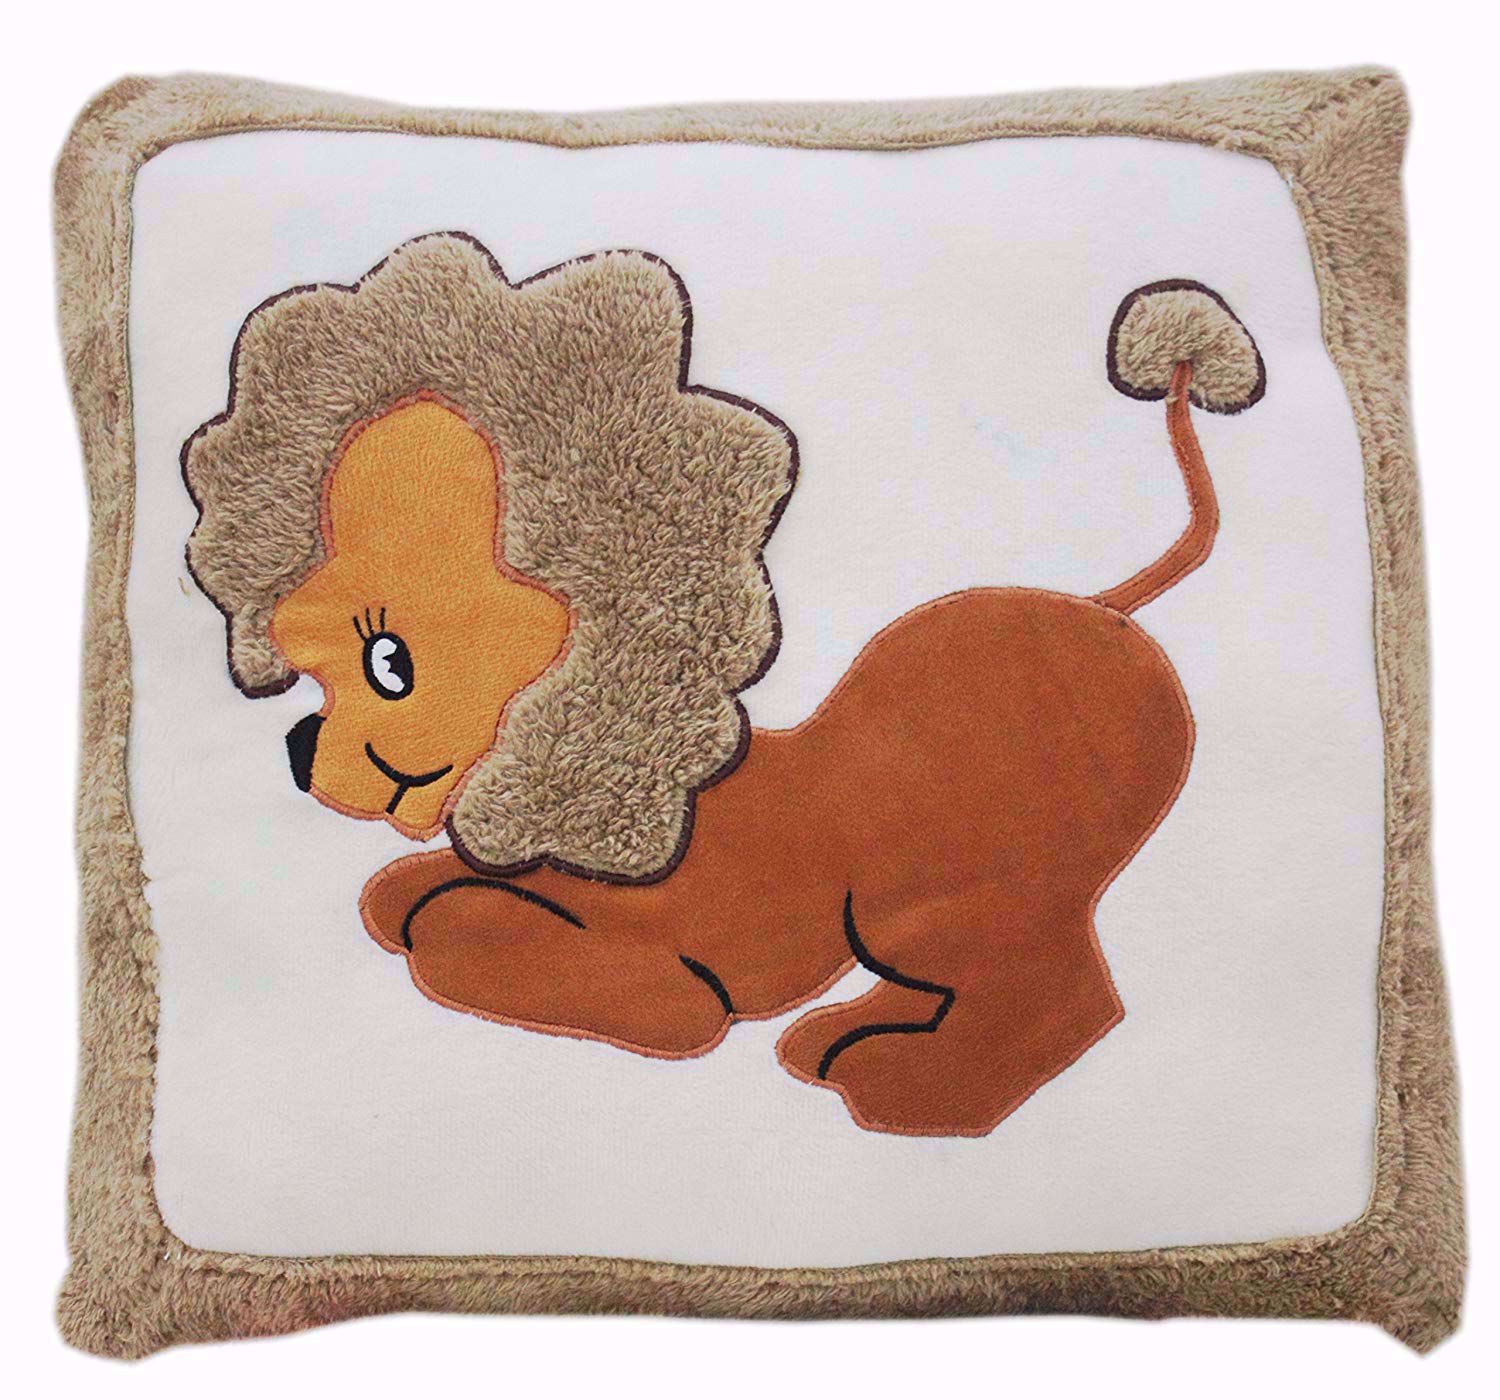 Baby Lion Stuffed Cushion, lion cushions online